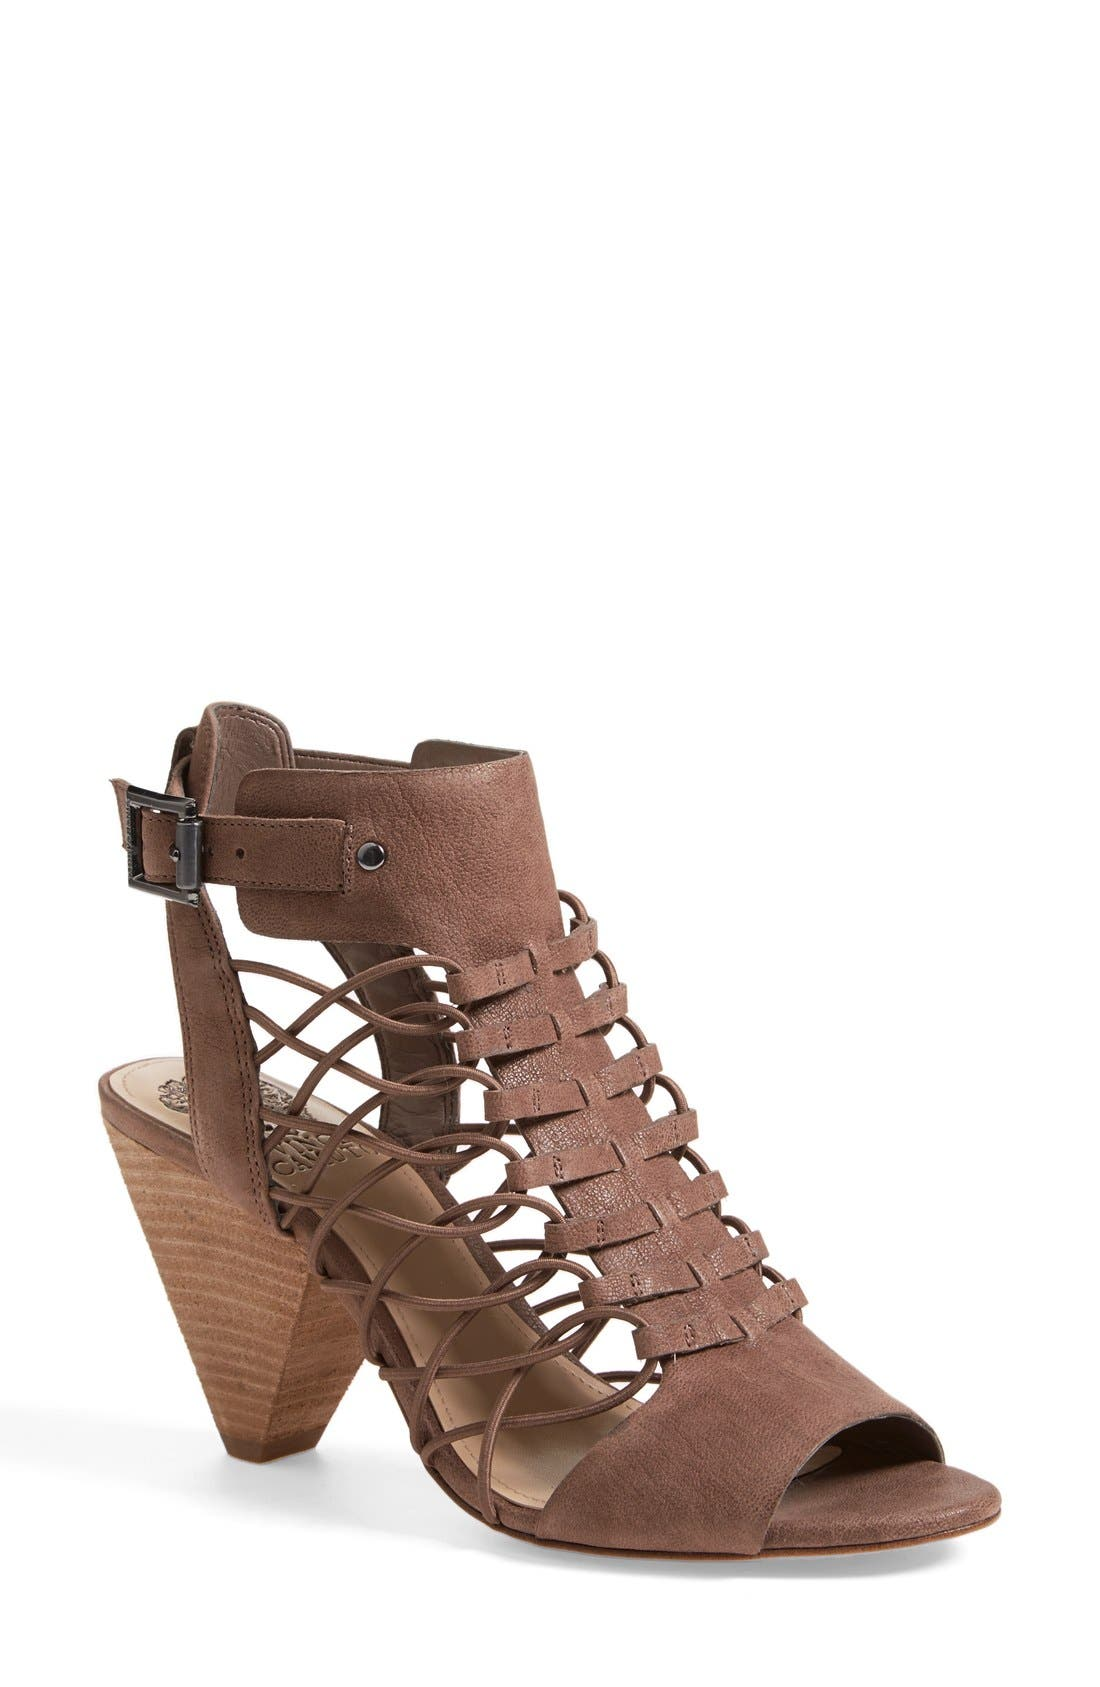 Main Image - Vince Camuto 'Evel' Leather Sandal (Women) (Nordstrom Exclusive)